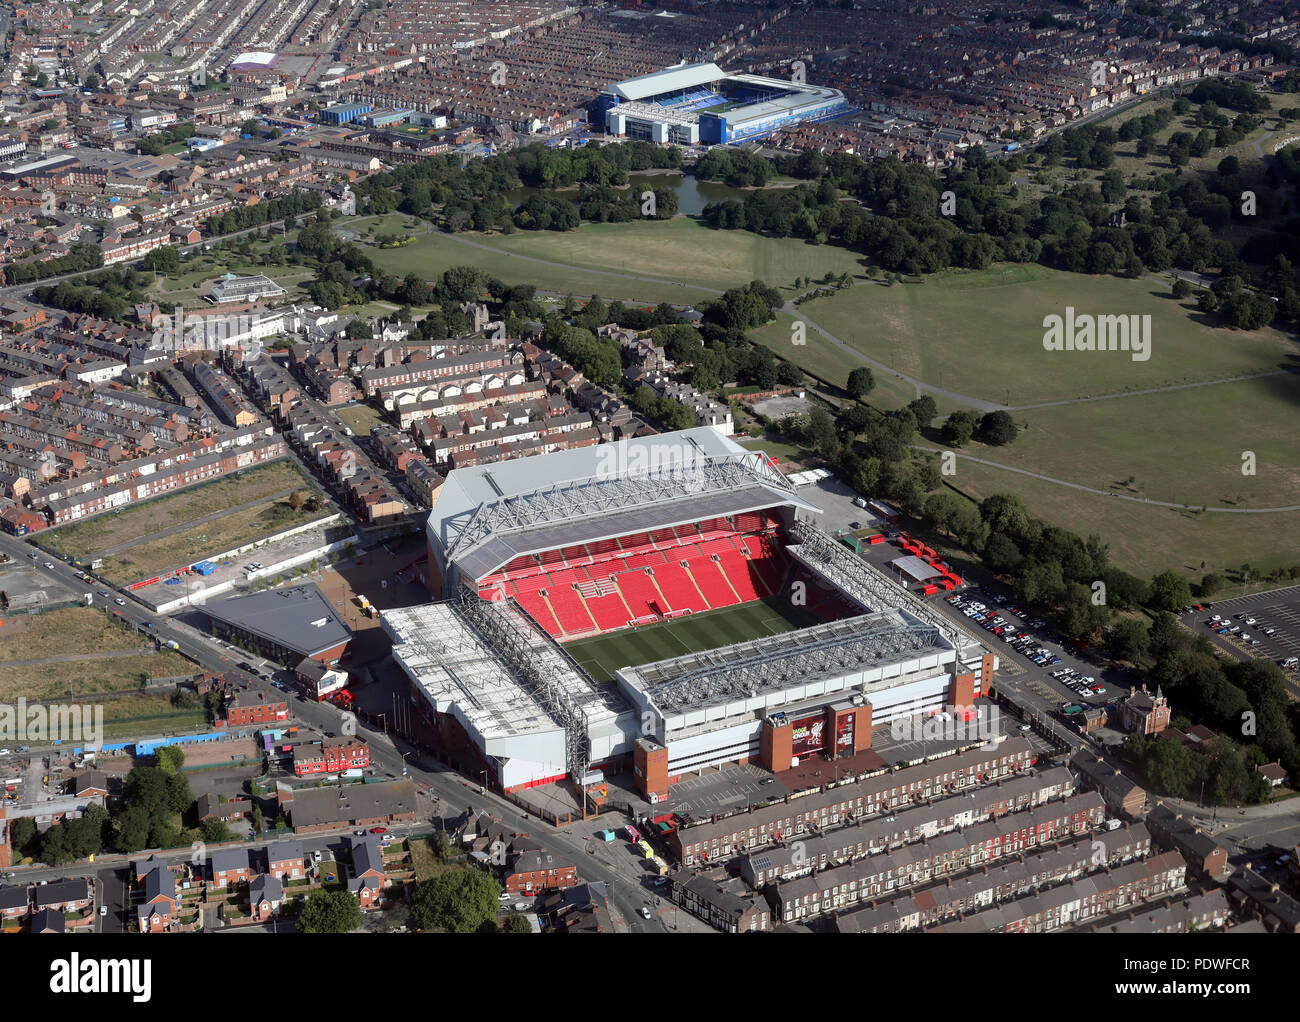 aerial view of Liverpool FC Anfield & Everton Goodison Park Stadia football grounds, England Stock Photo